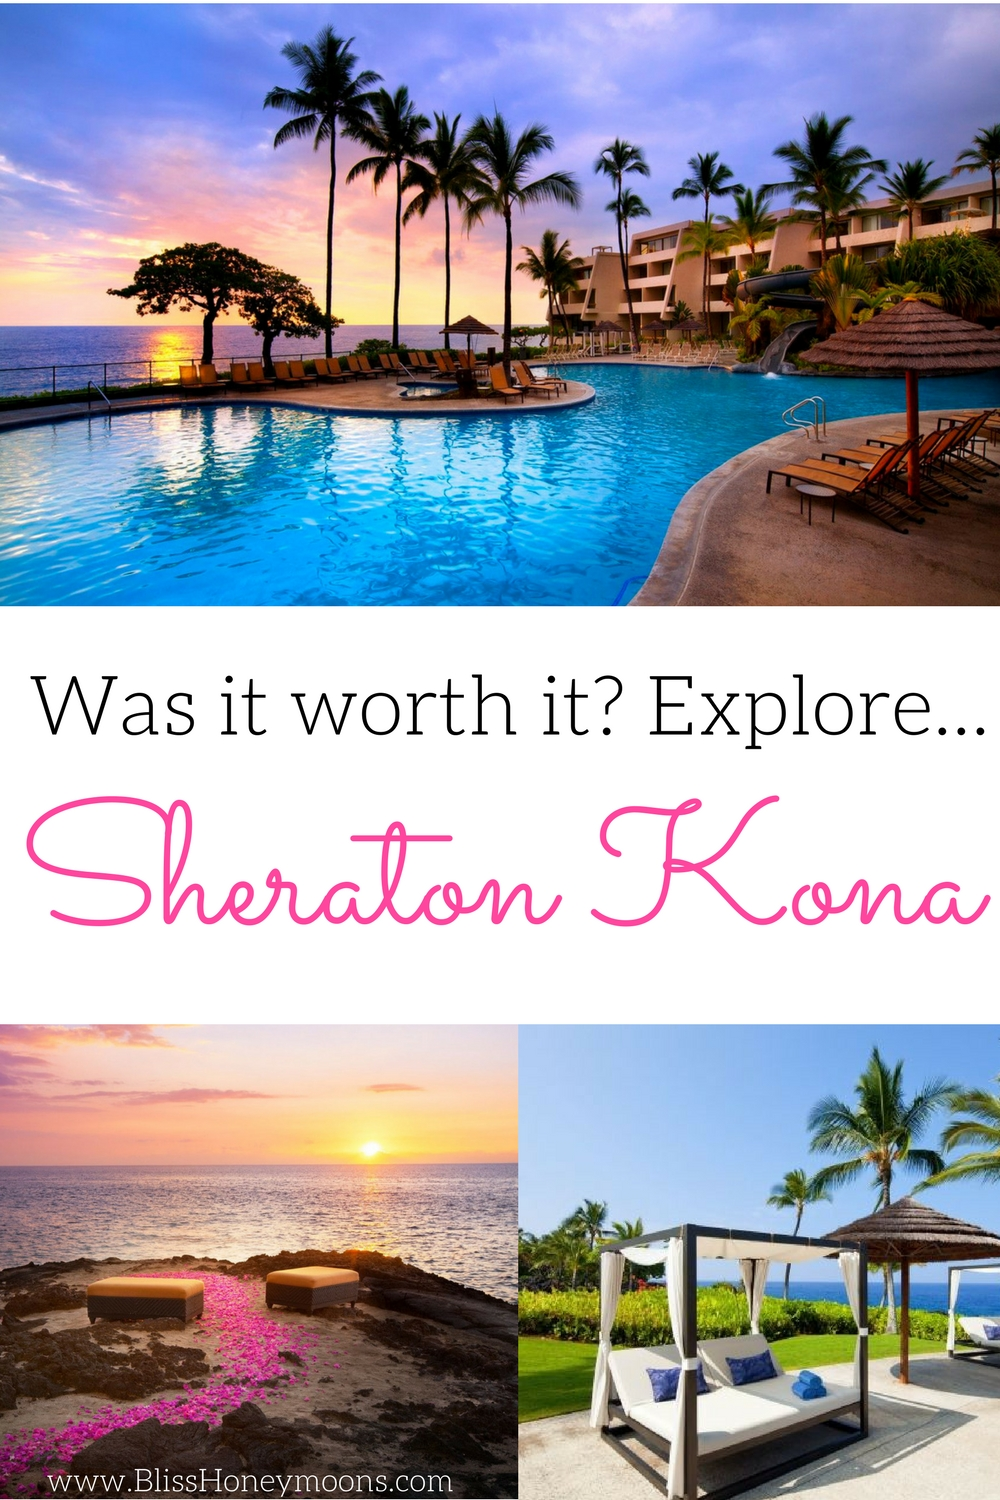 Sheraton Kona review, Sheraton Kona Resort review, romantic trip idea, best Hawaii resort, top honeymoon resort, Bliss Honeymoons review